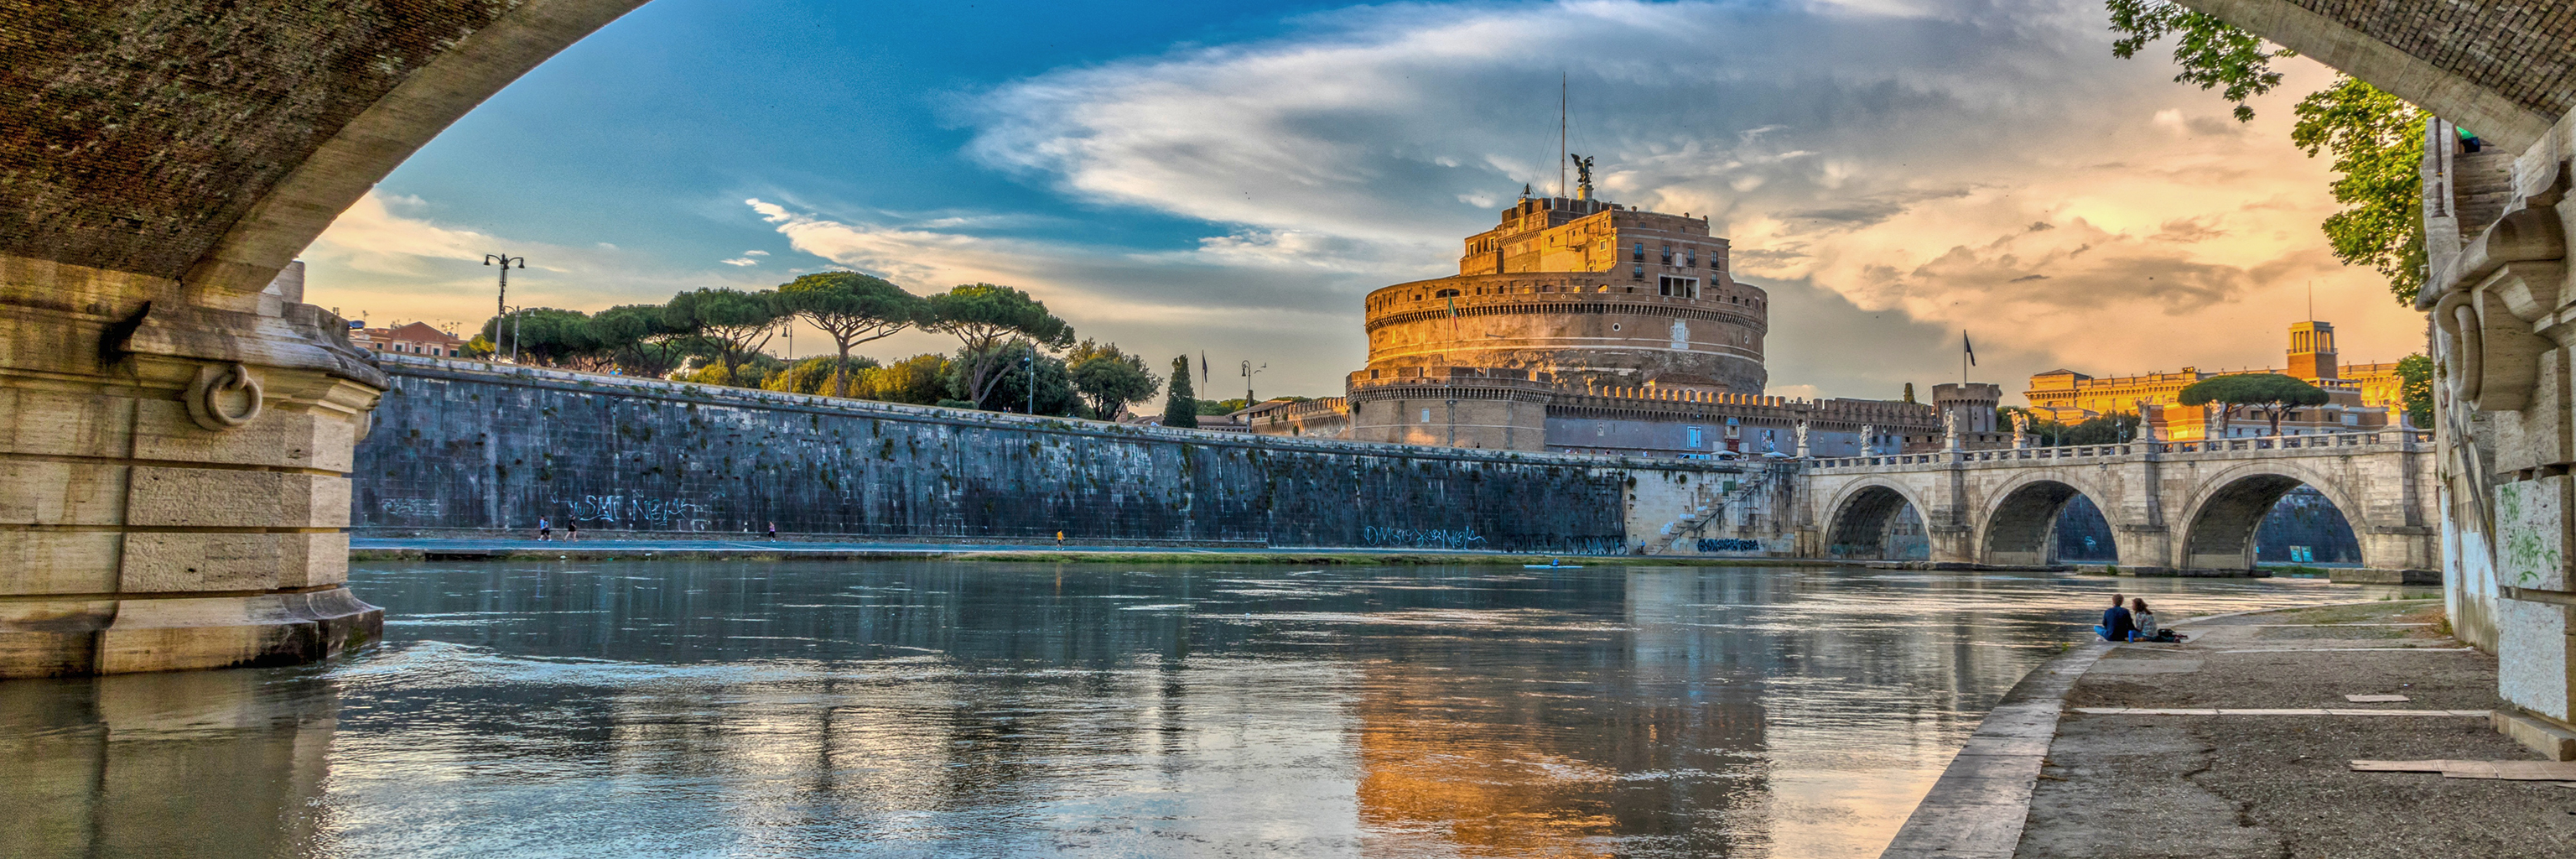 A scenic view of the Mausoleum of Hadrian, usually known as Castel Sant'Angelo, in Rome Italy.